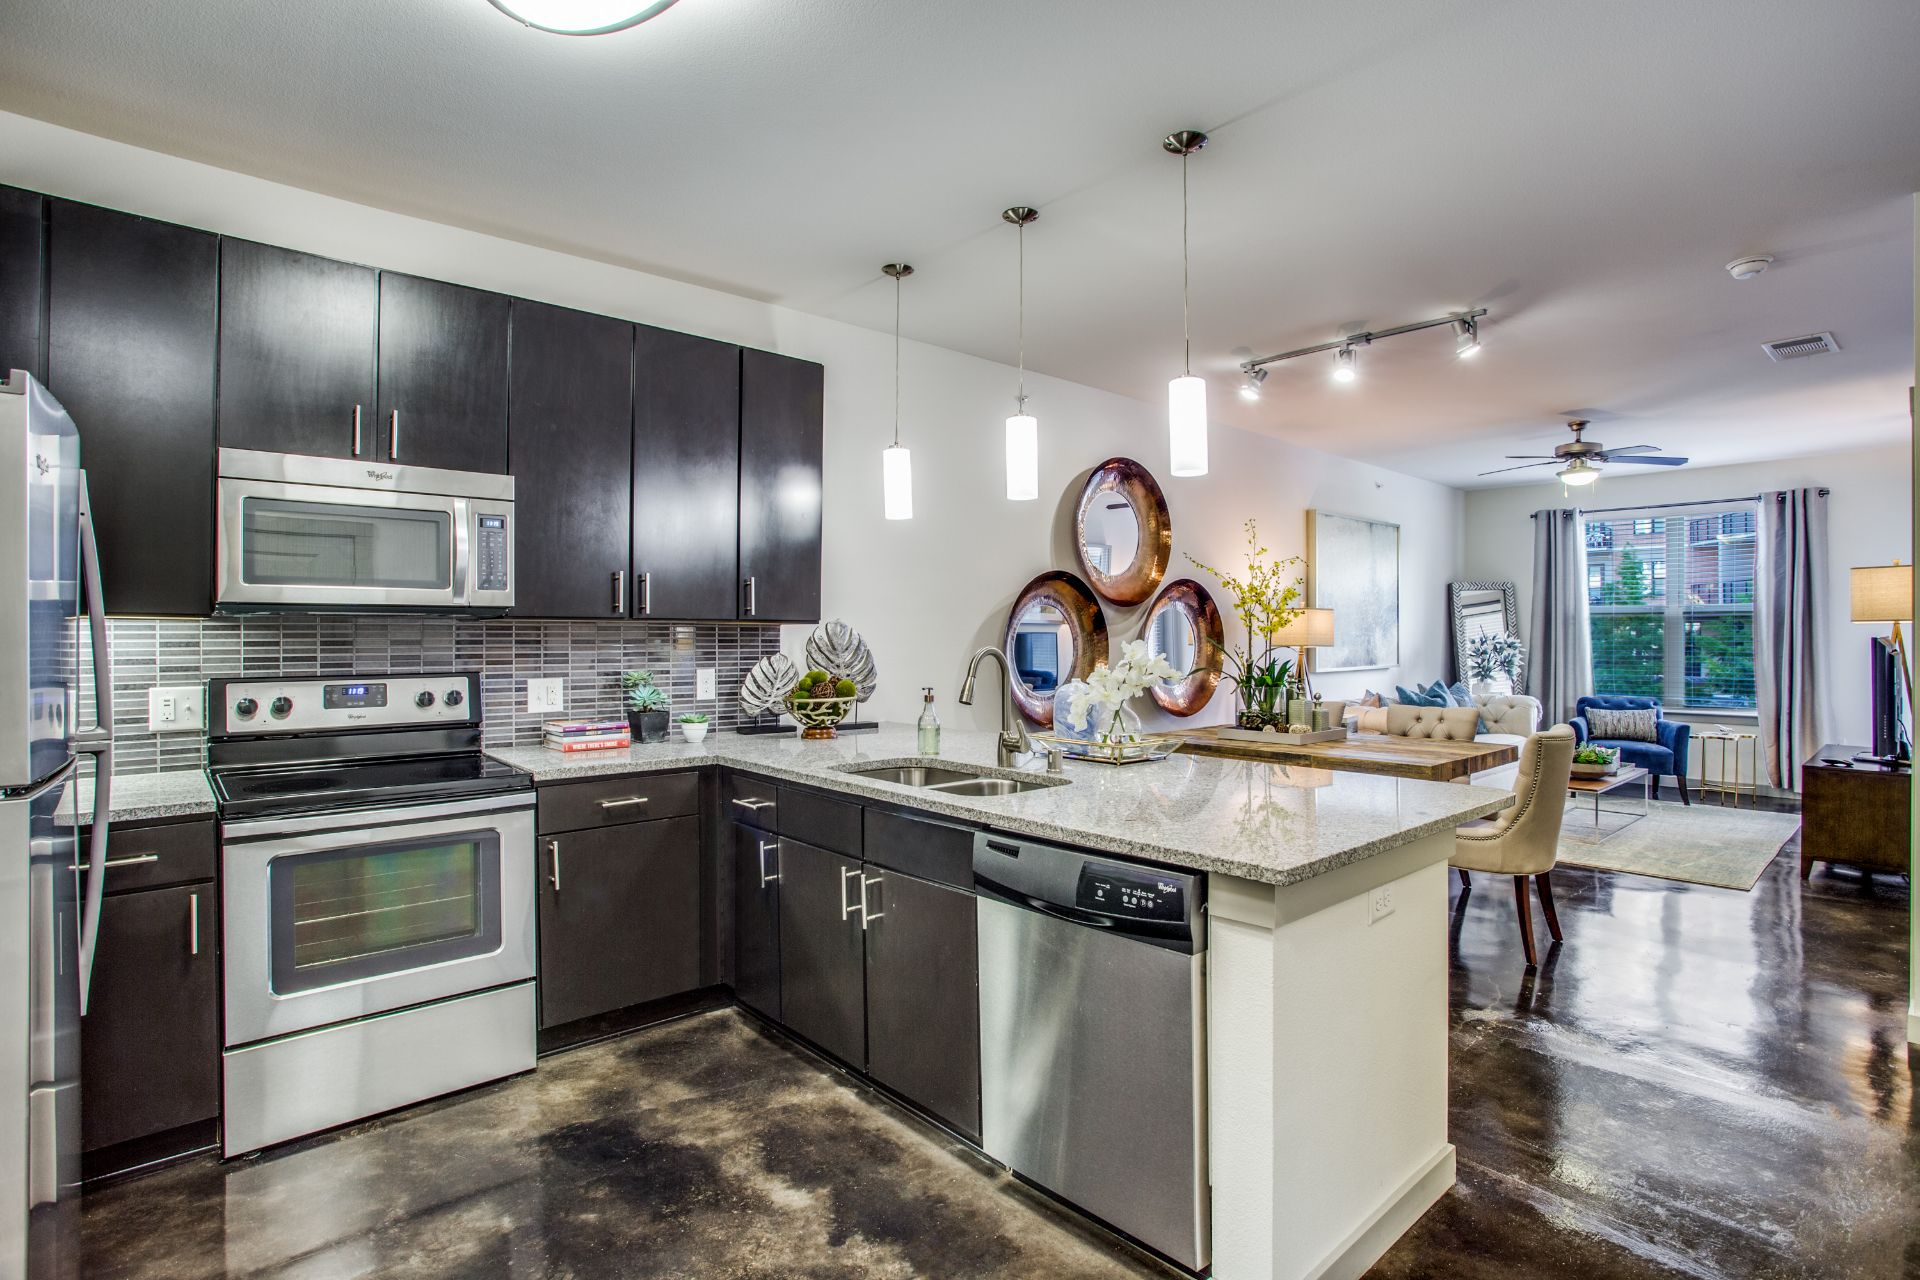 Apartment kitchen with stainless steel appliances and dark cabinetry